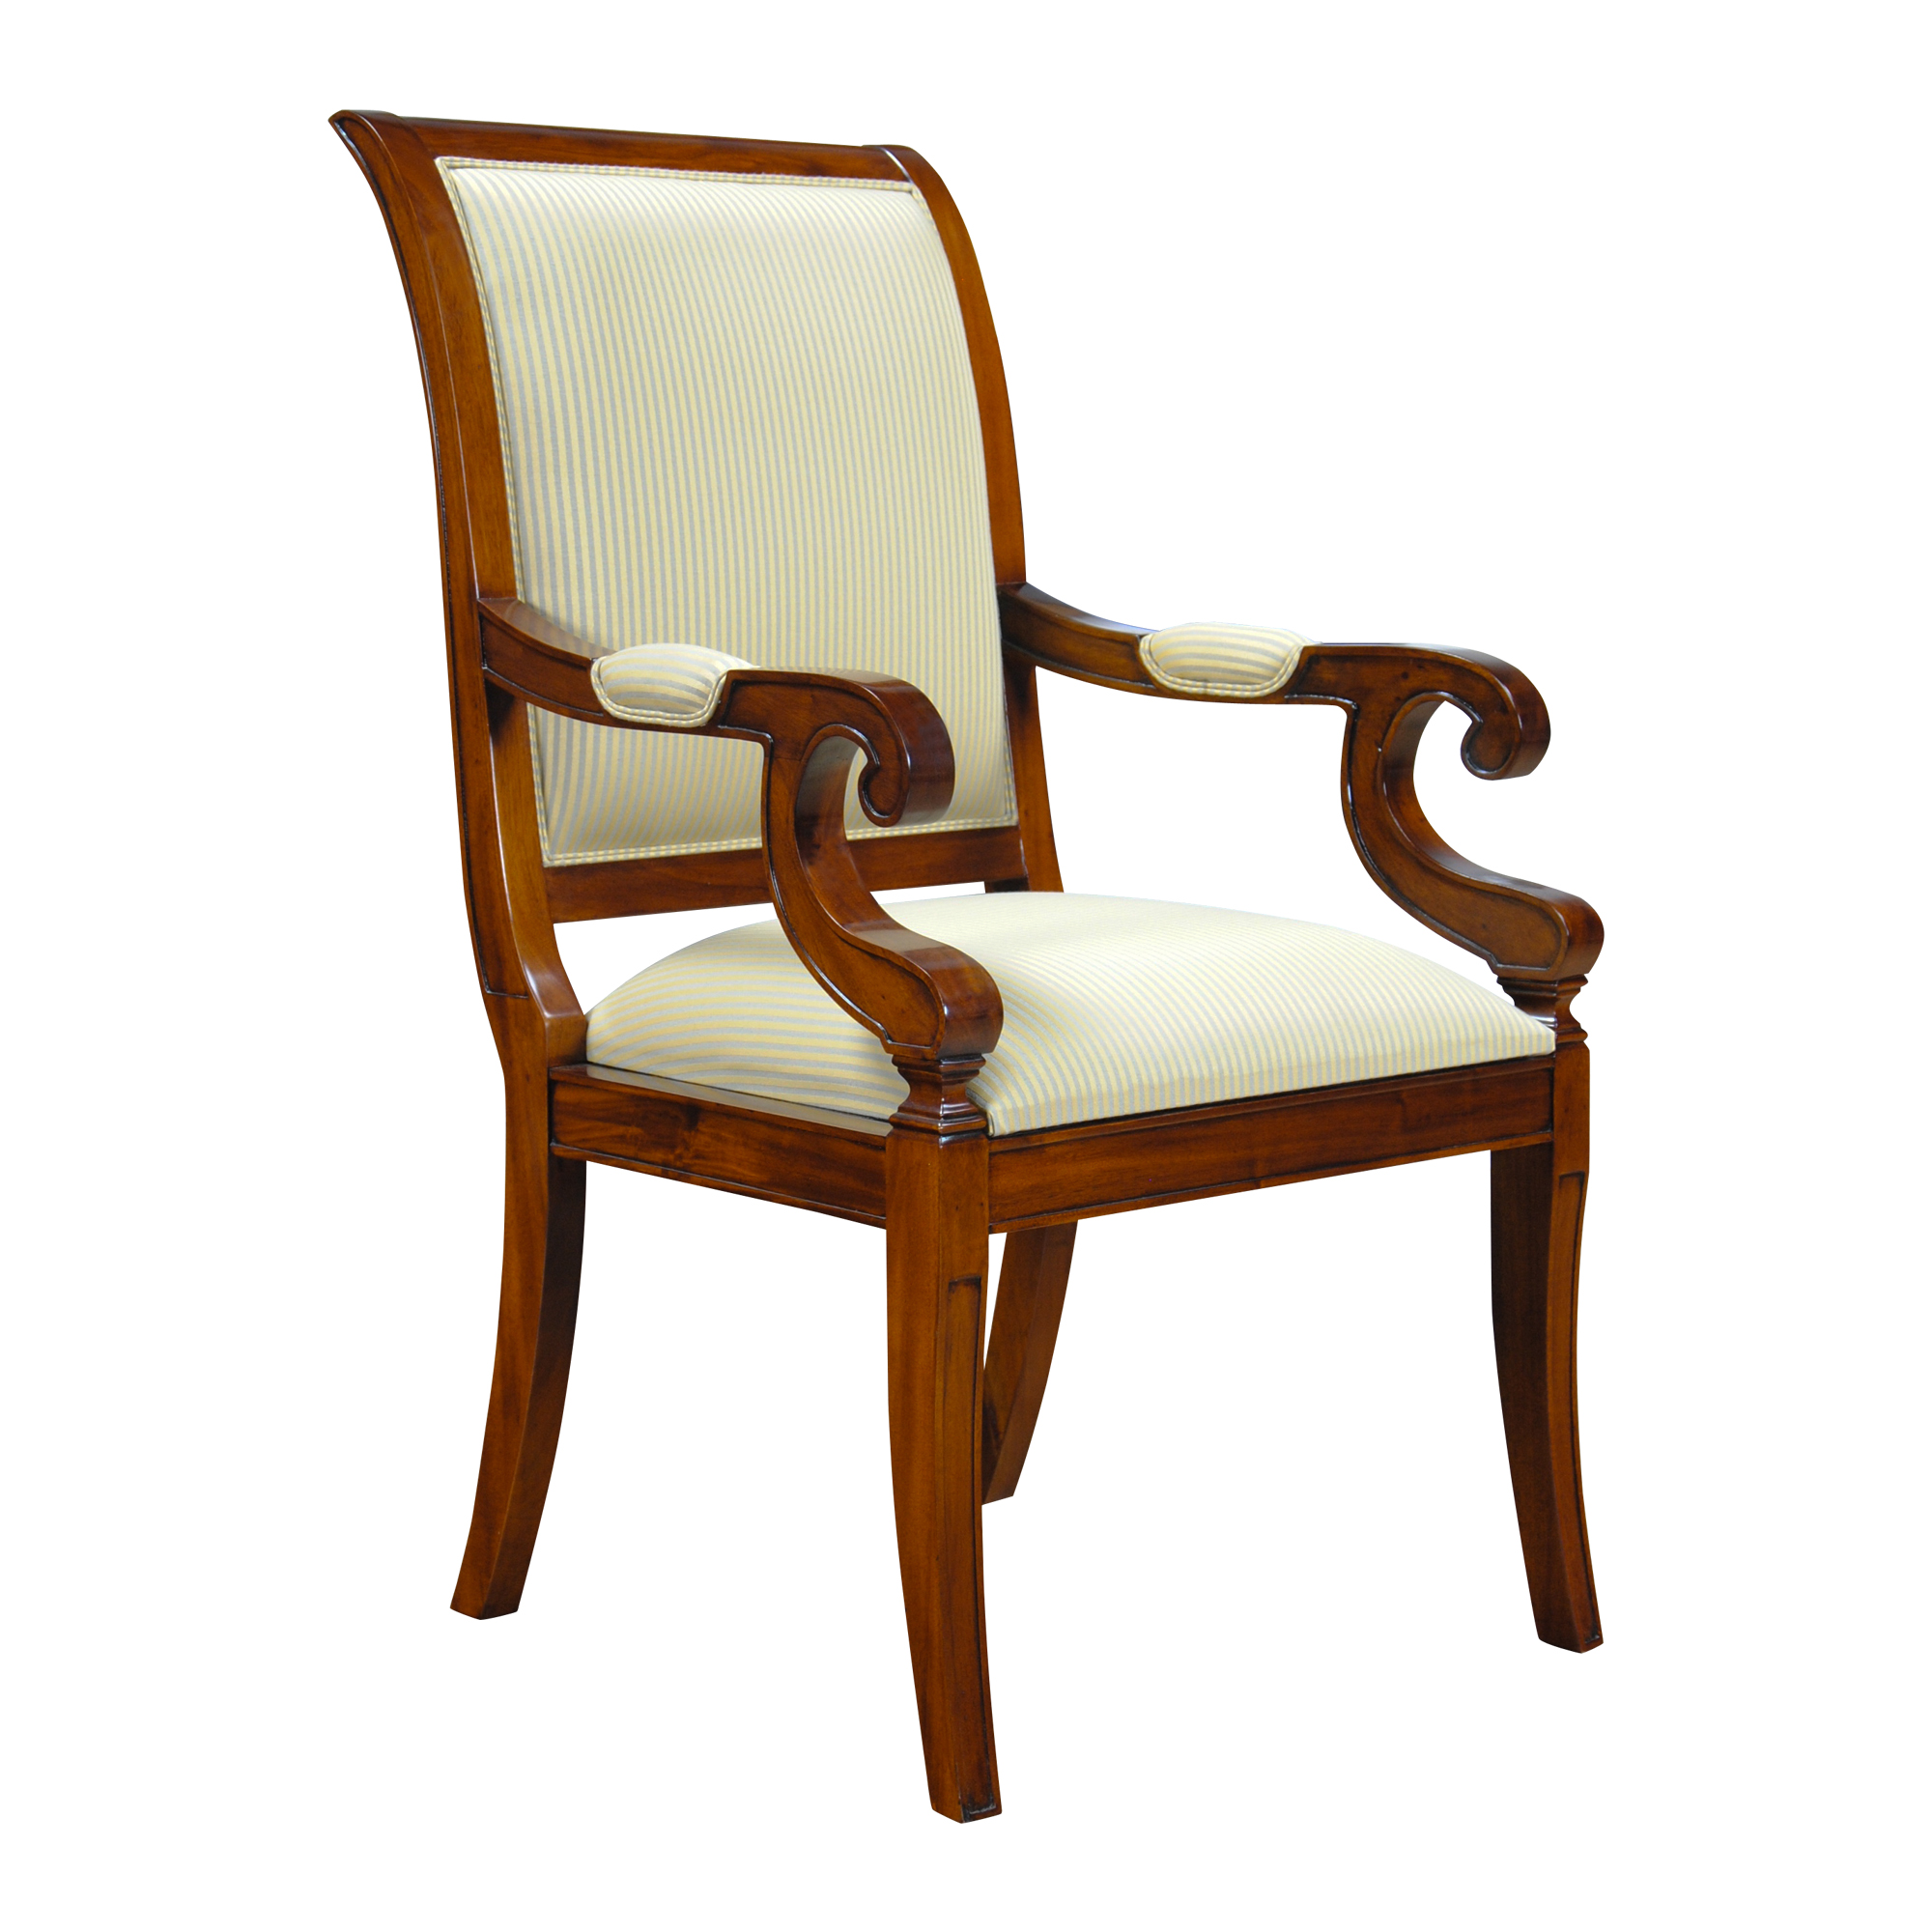 Upholstered Dining Chairs Regency Upholstered Dining Chair Niagara Furniture Solid